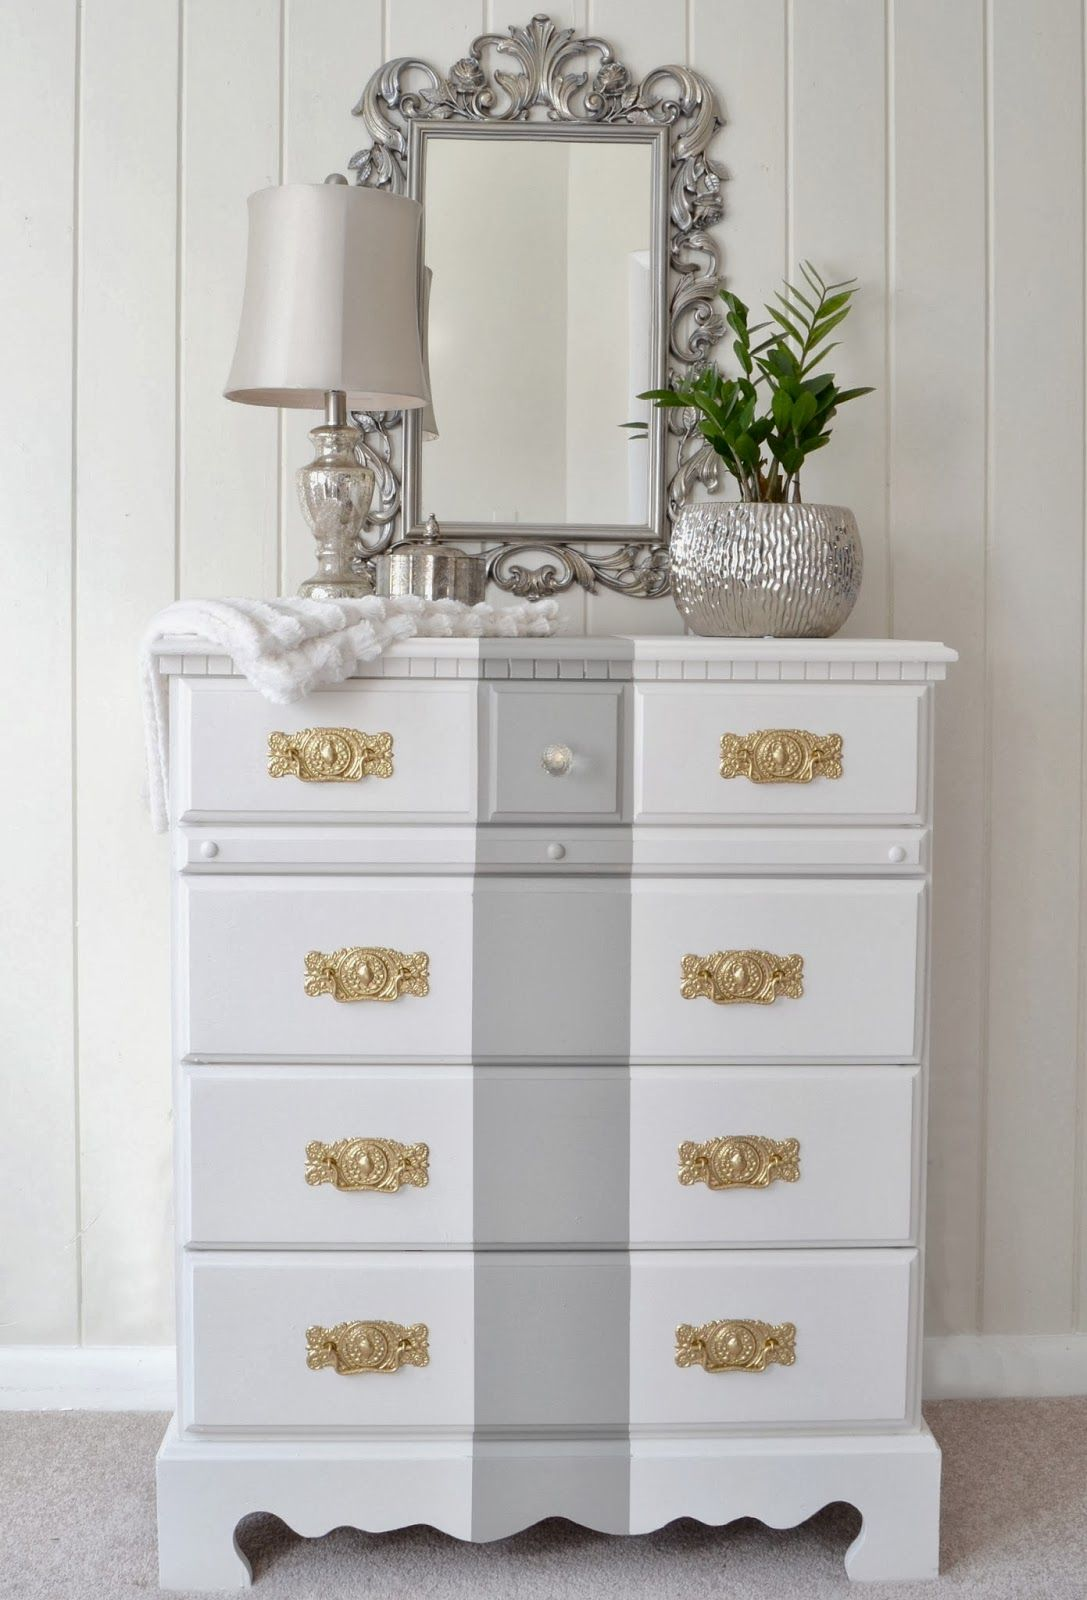 This Site Has Tons Of Great Ideas On How To Update Old Furniture On A  Budget!